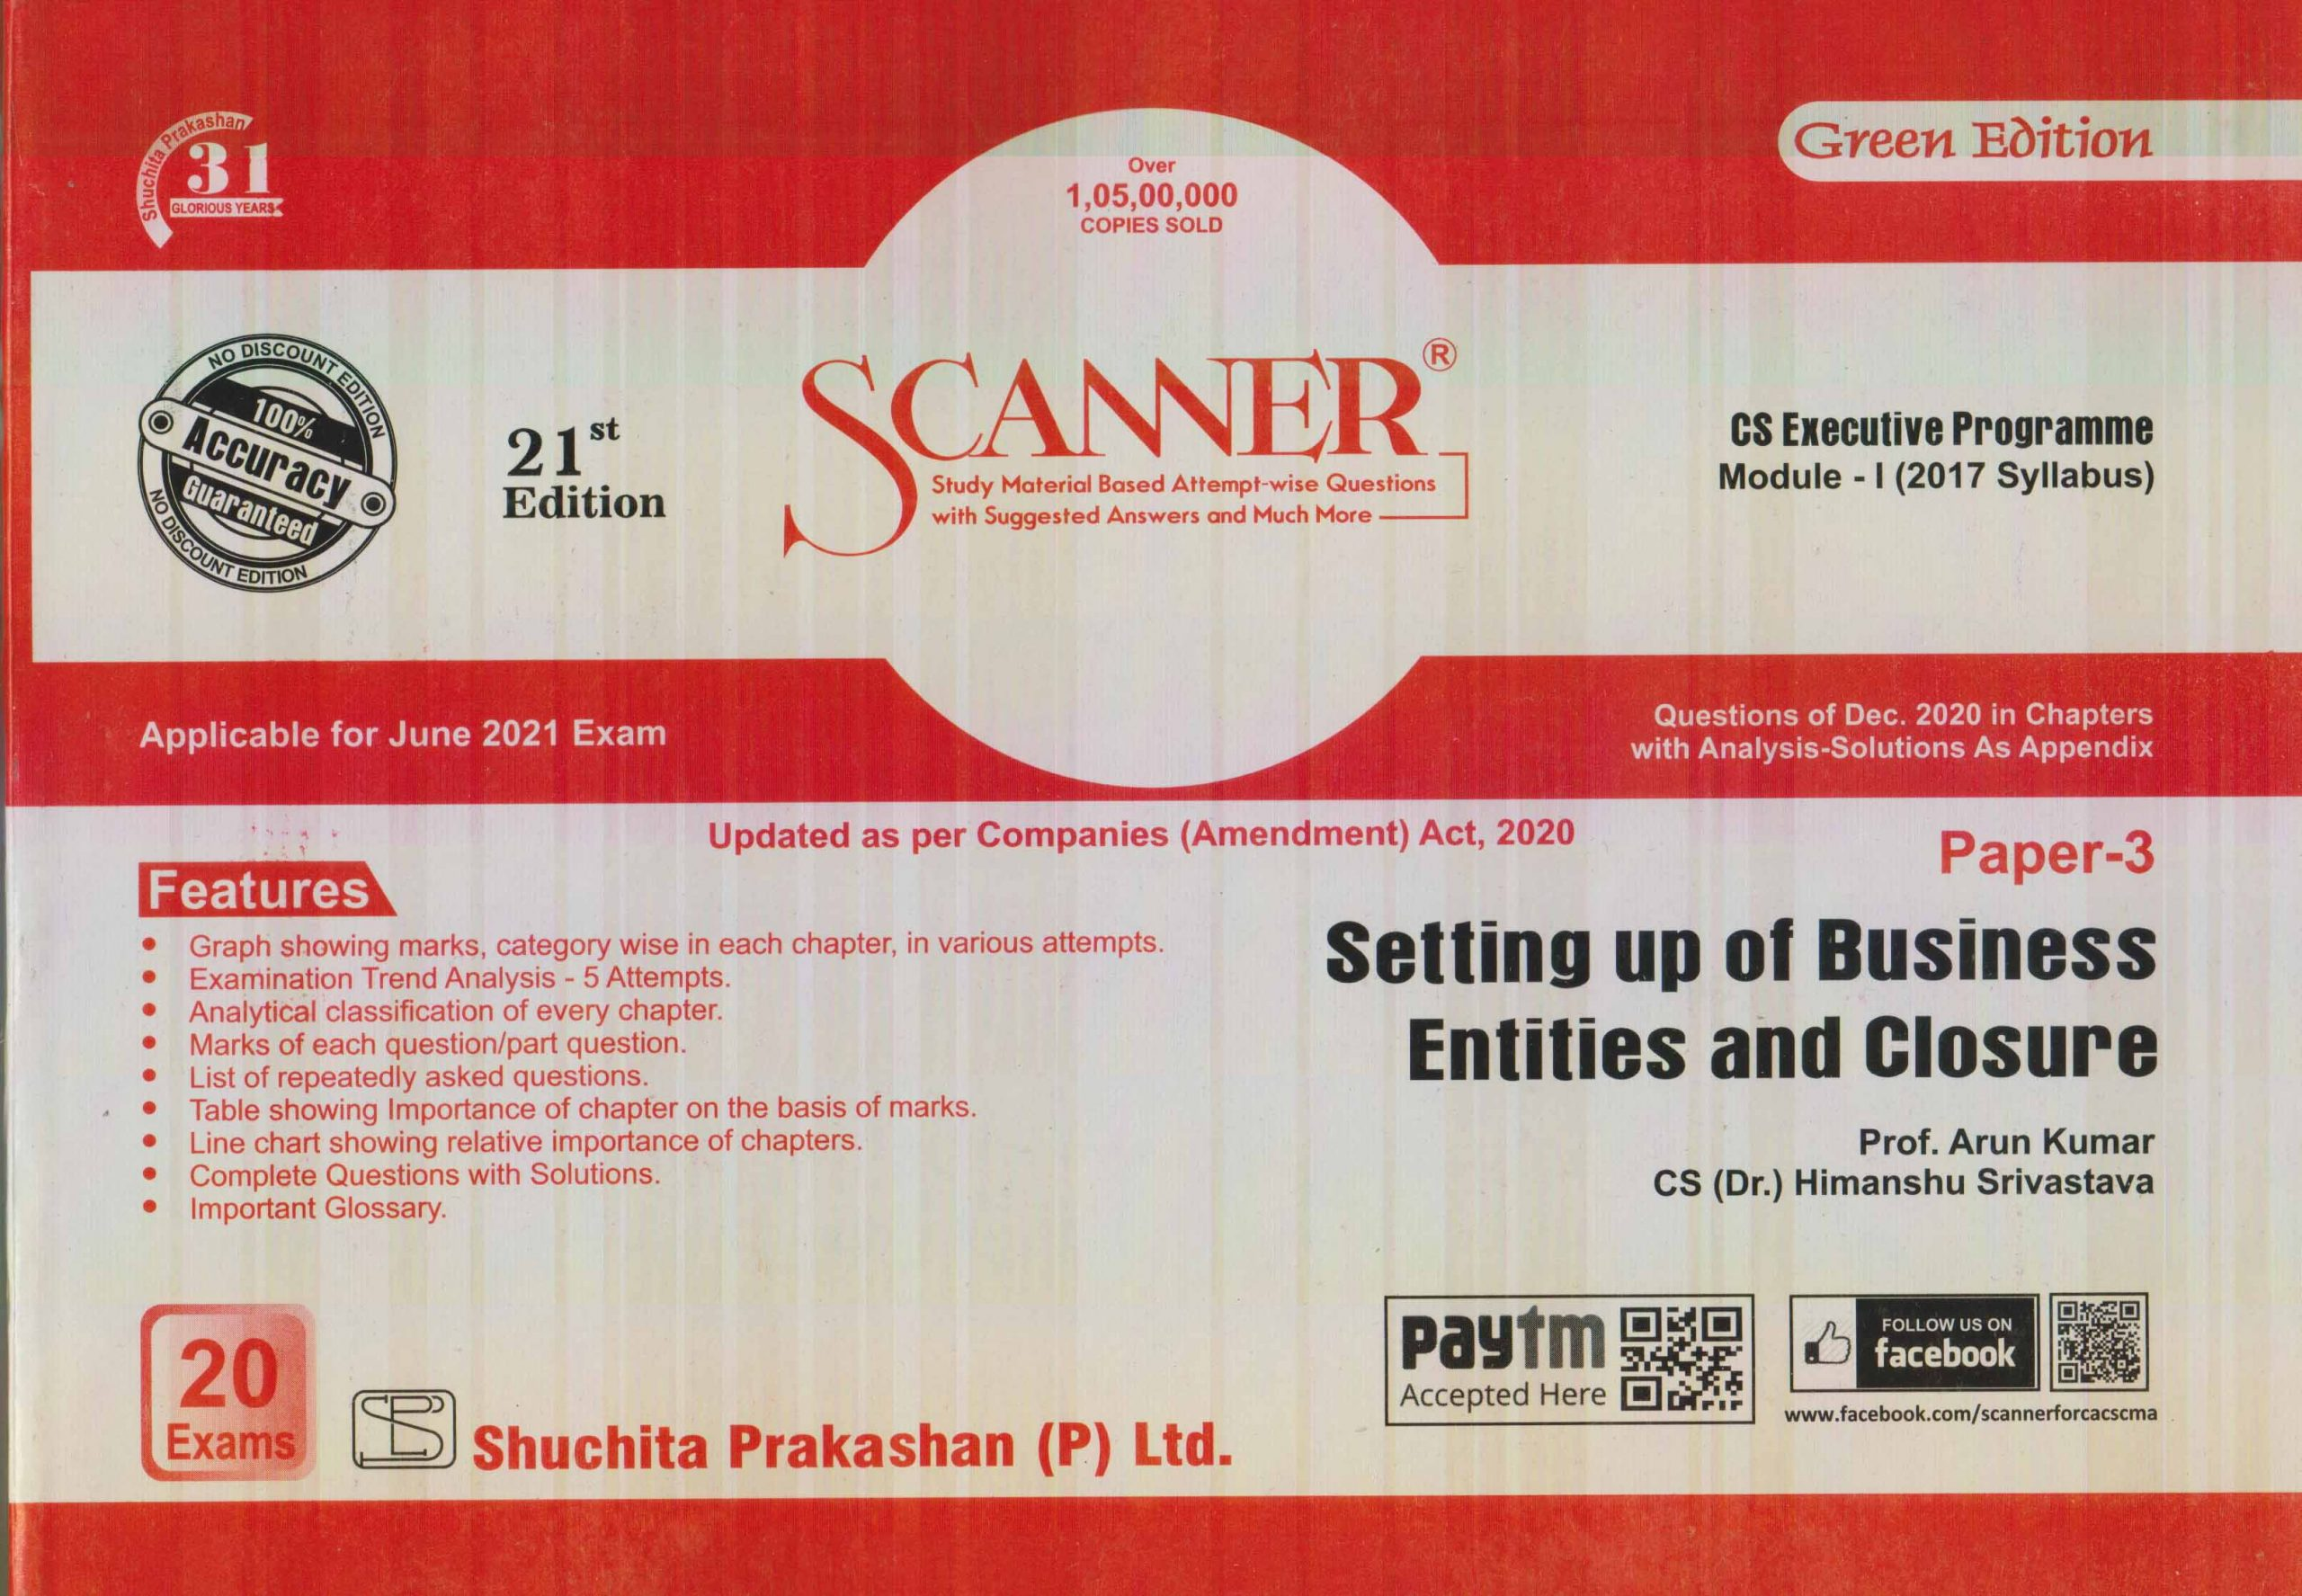 Shuchita CS Executive Programme Module-I Paper 3 Setting up of Business Entities and Closure (Shuchita Prakashan) for 2021 ATTEMPT